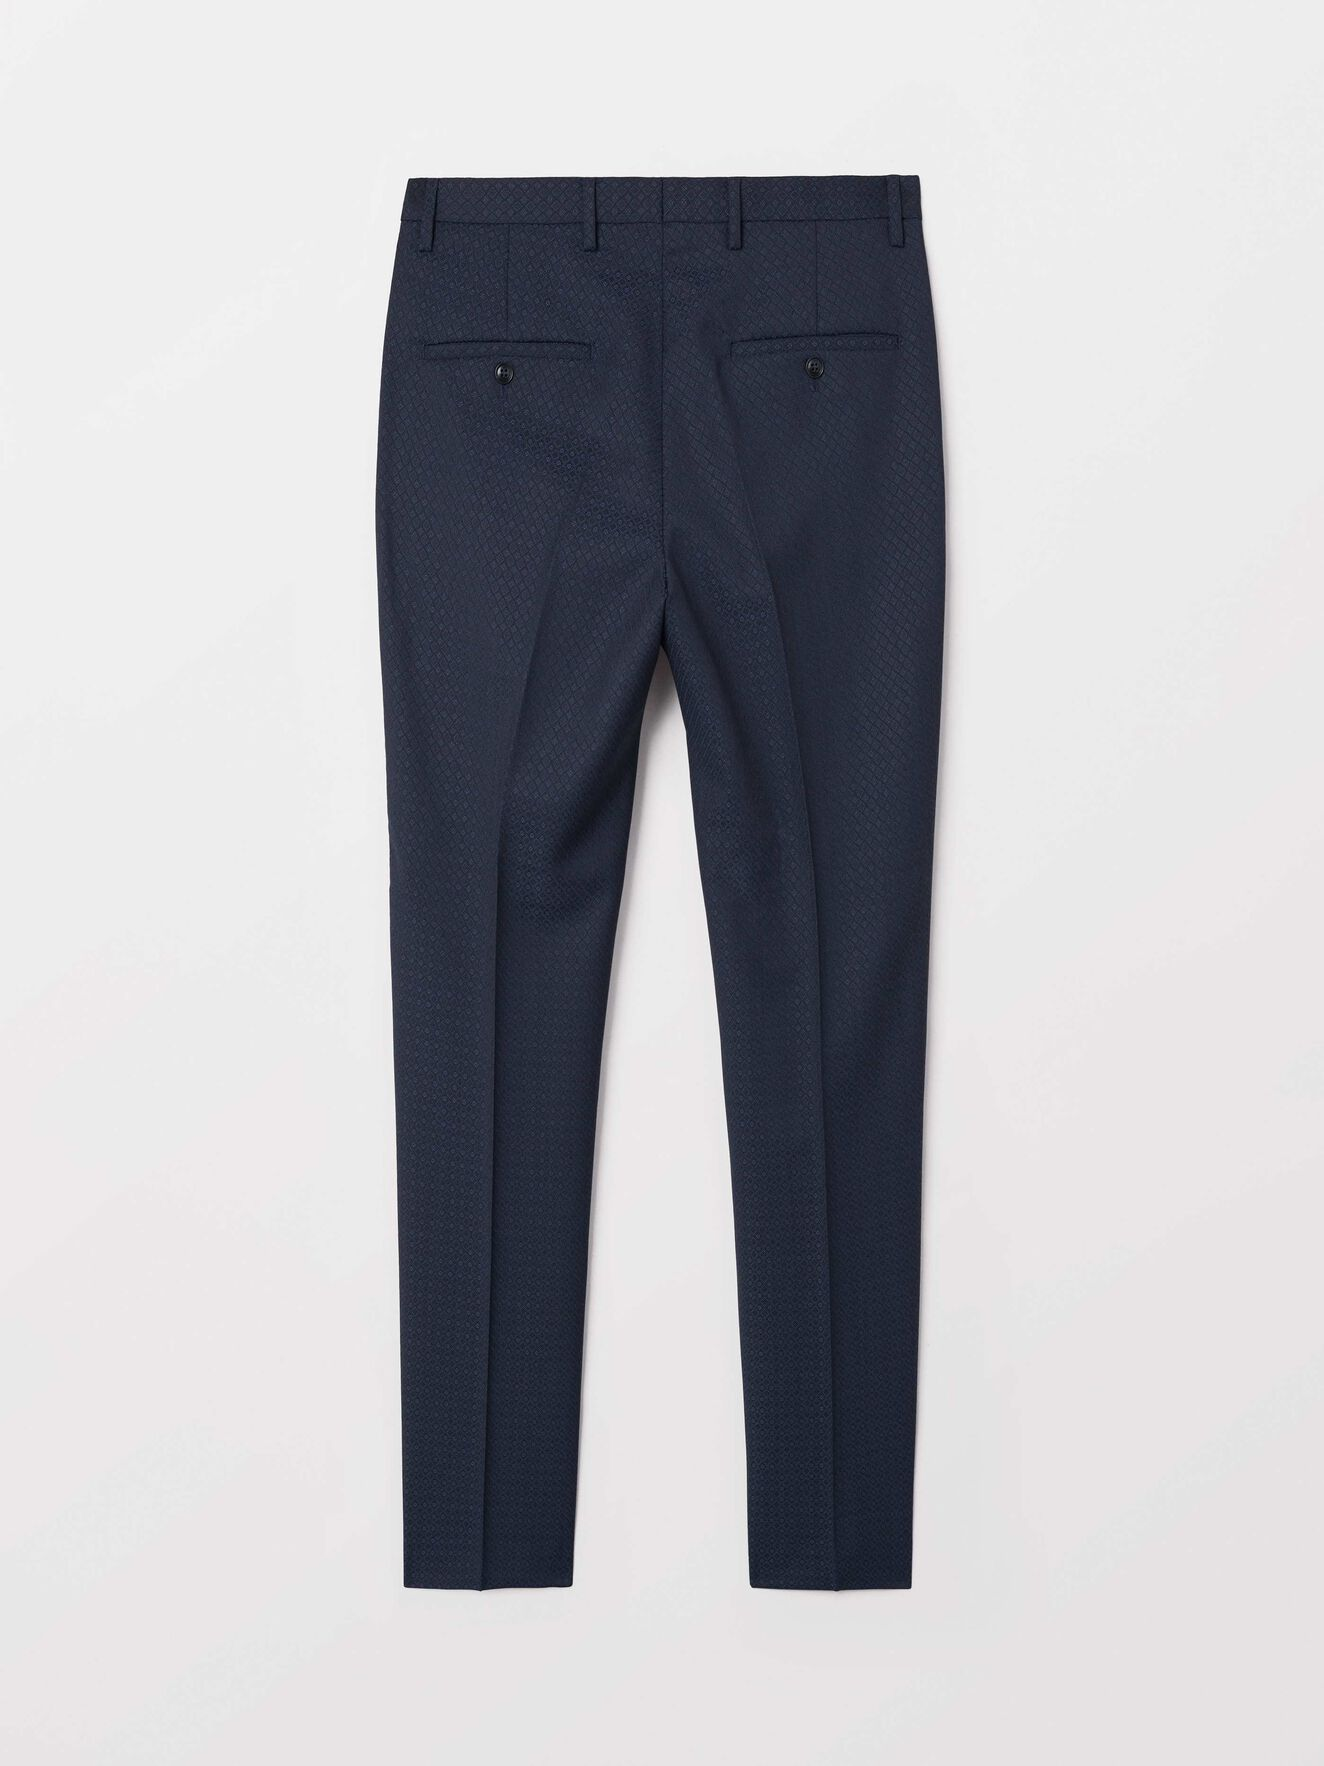 Tarpino Trousers in Royal Blue from Tiger of Sweden